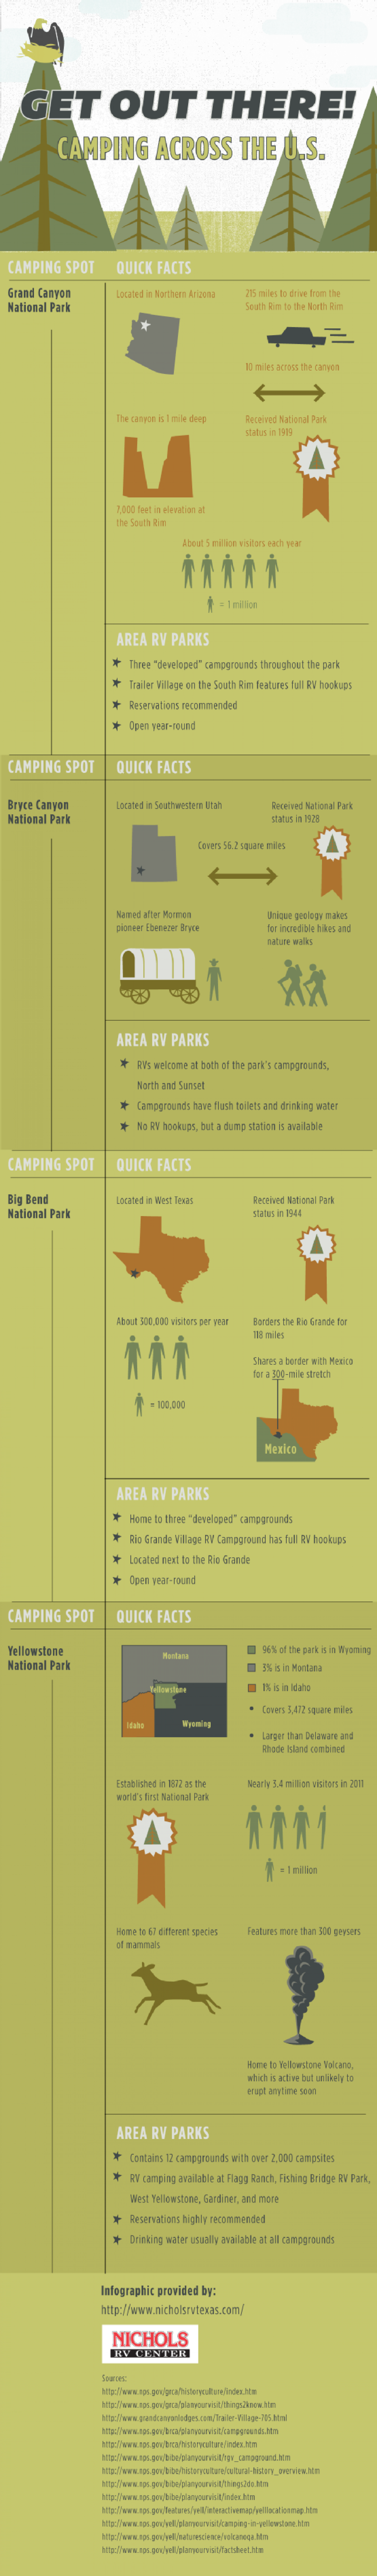 Get out There! Camping Across the U.S. Infographic